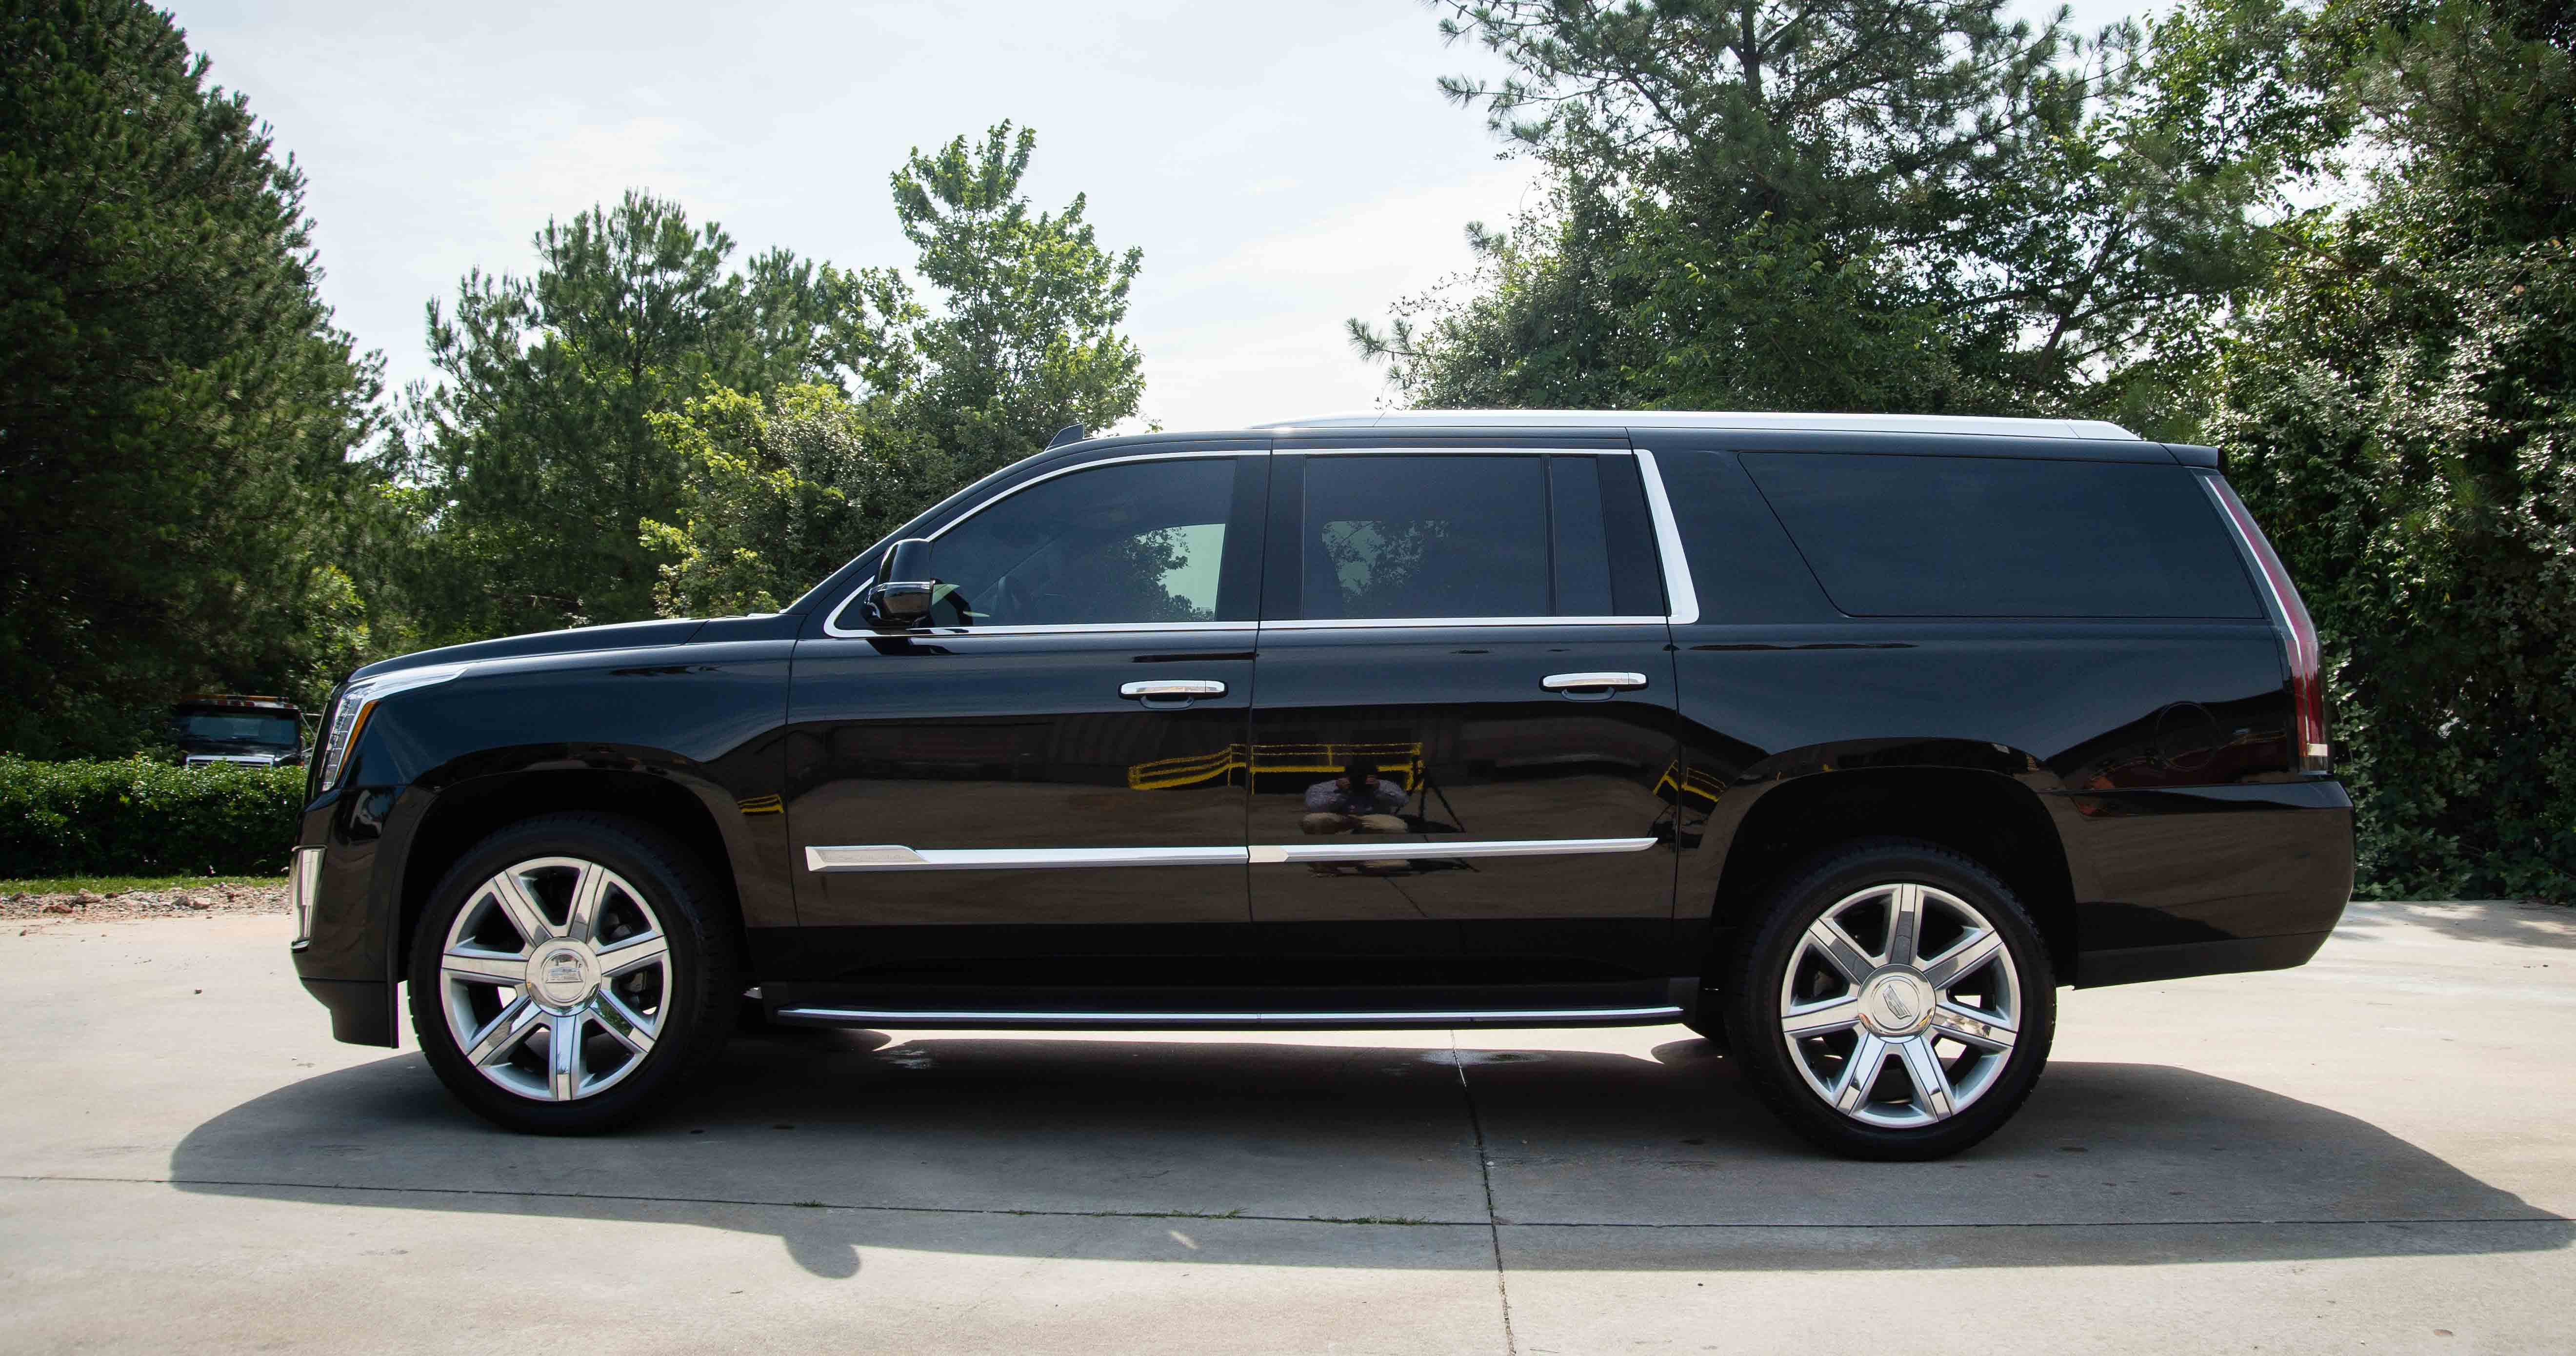 accessories cadillac escalade ecostyle chauffeured transportation vehicles dsc